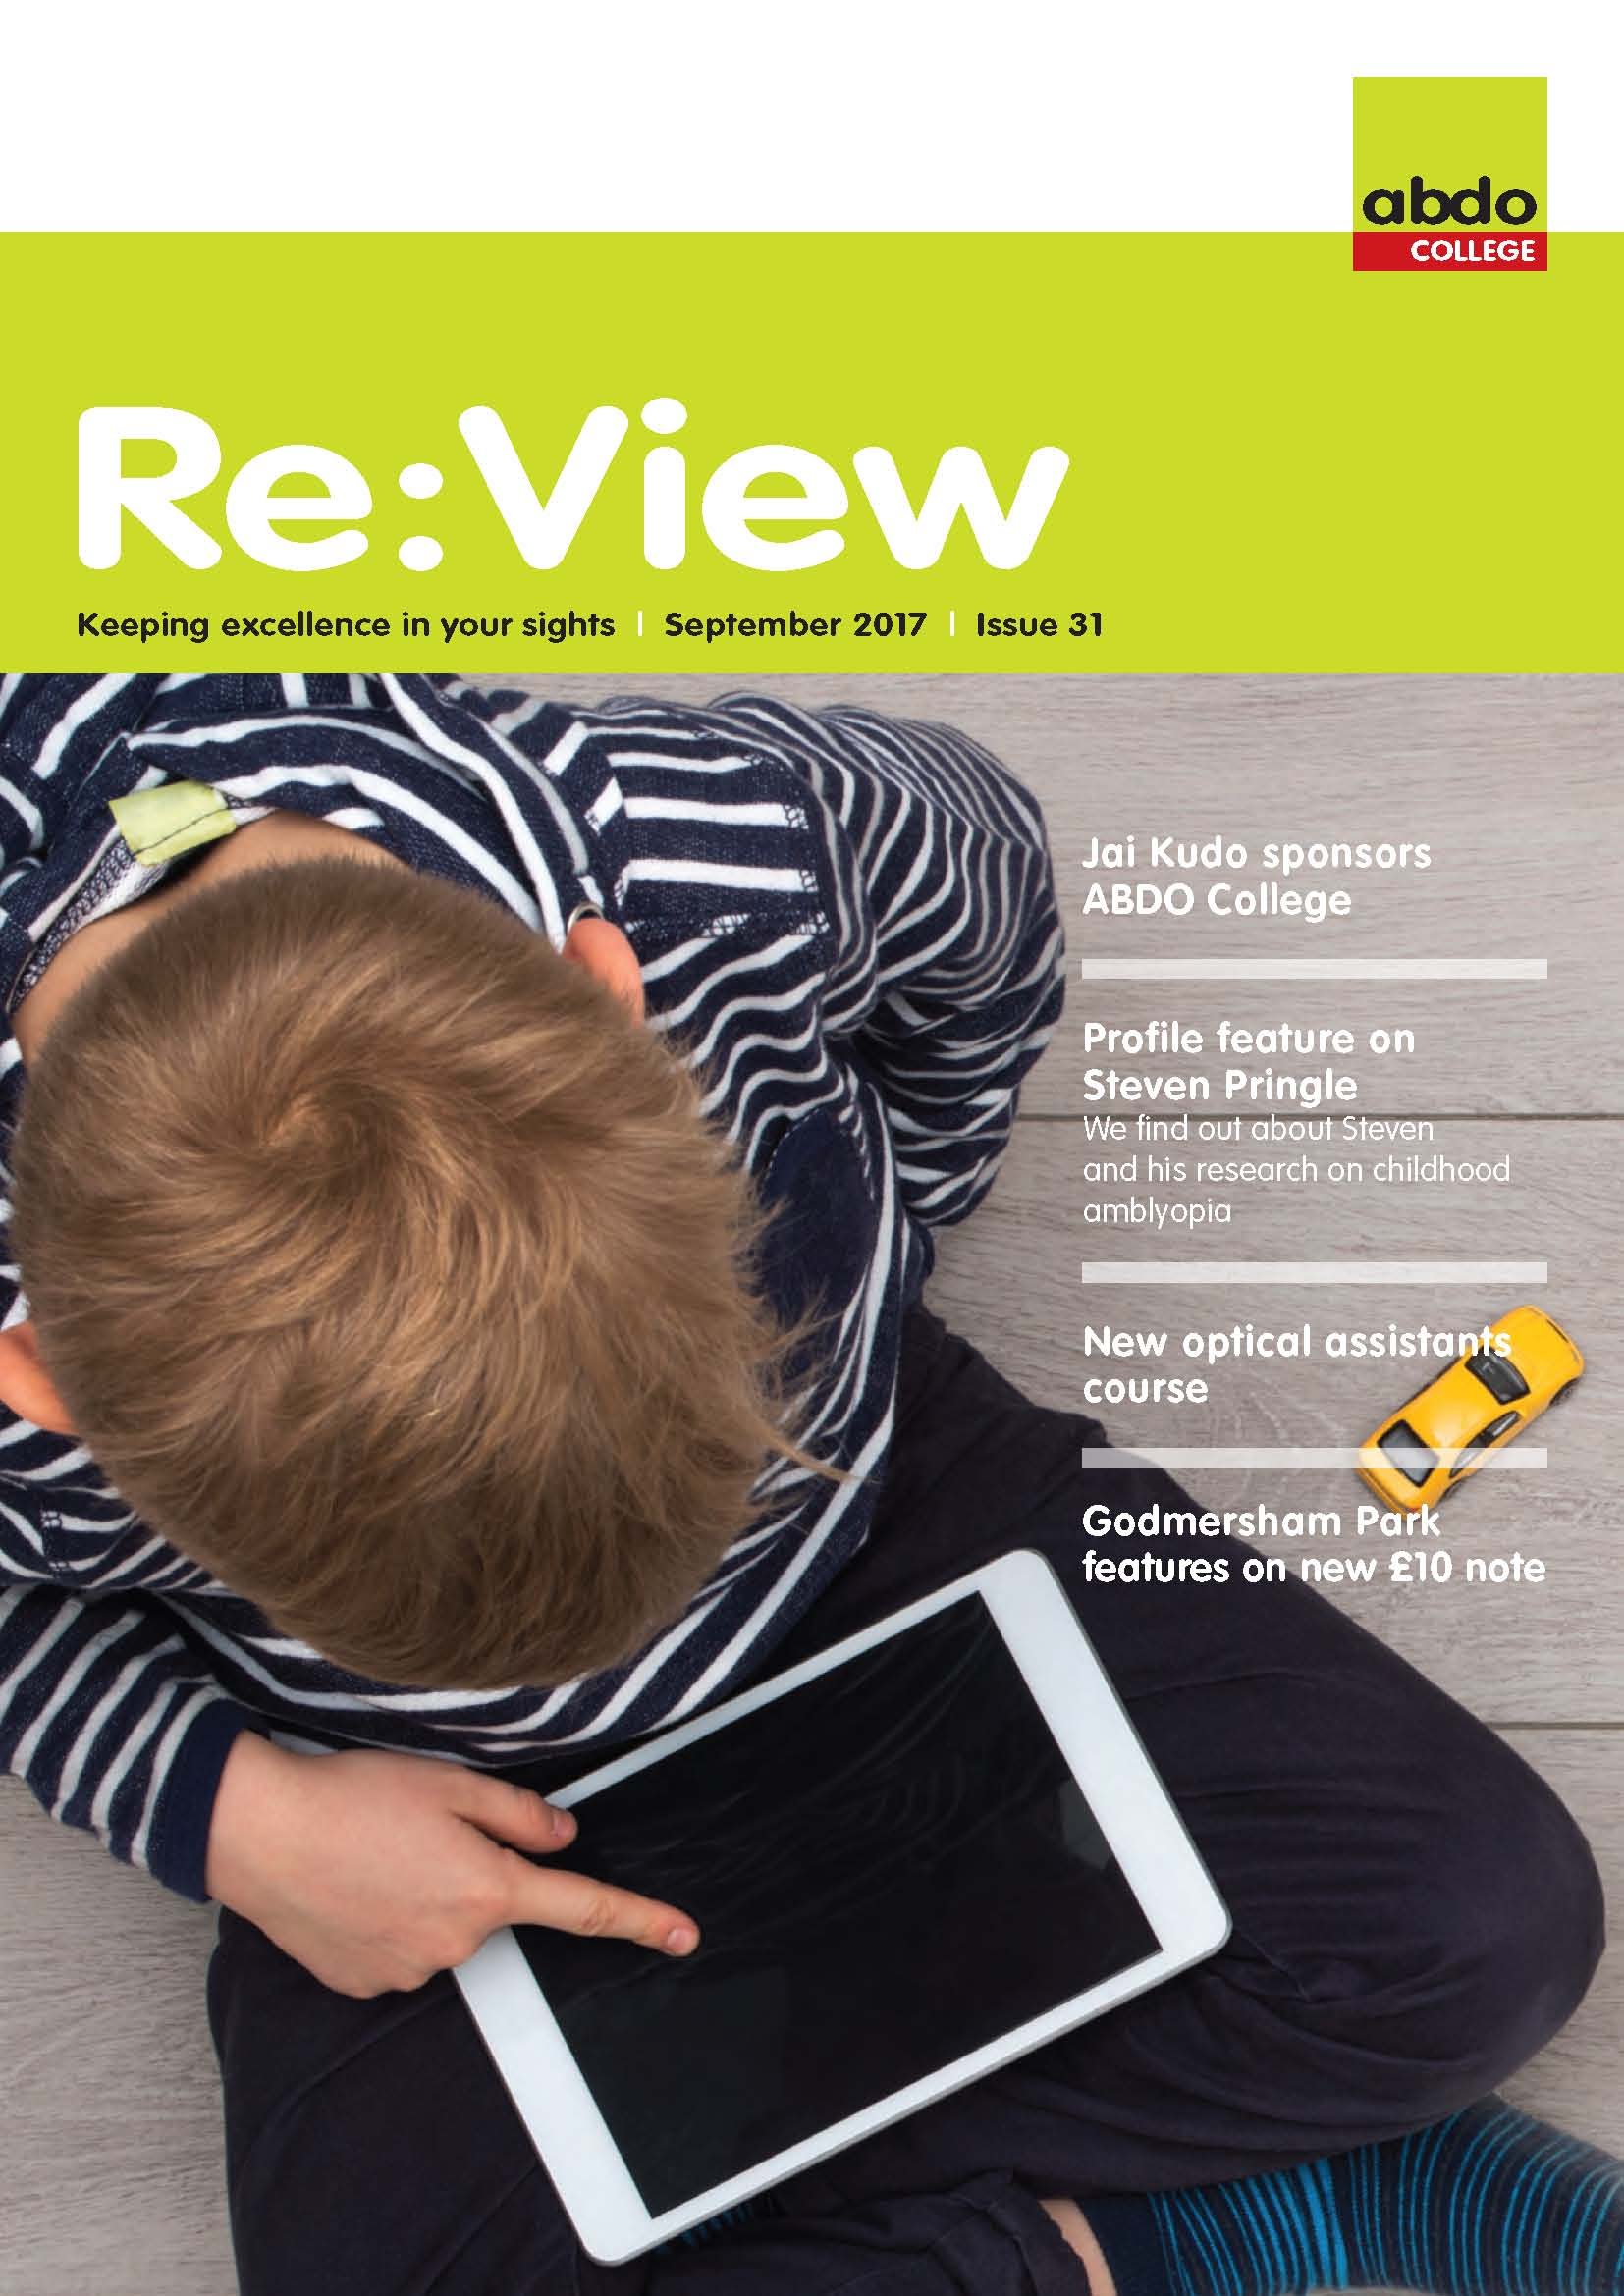 View the latest issue of Re:View - ABDO College